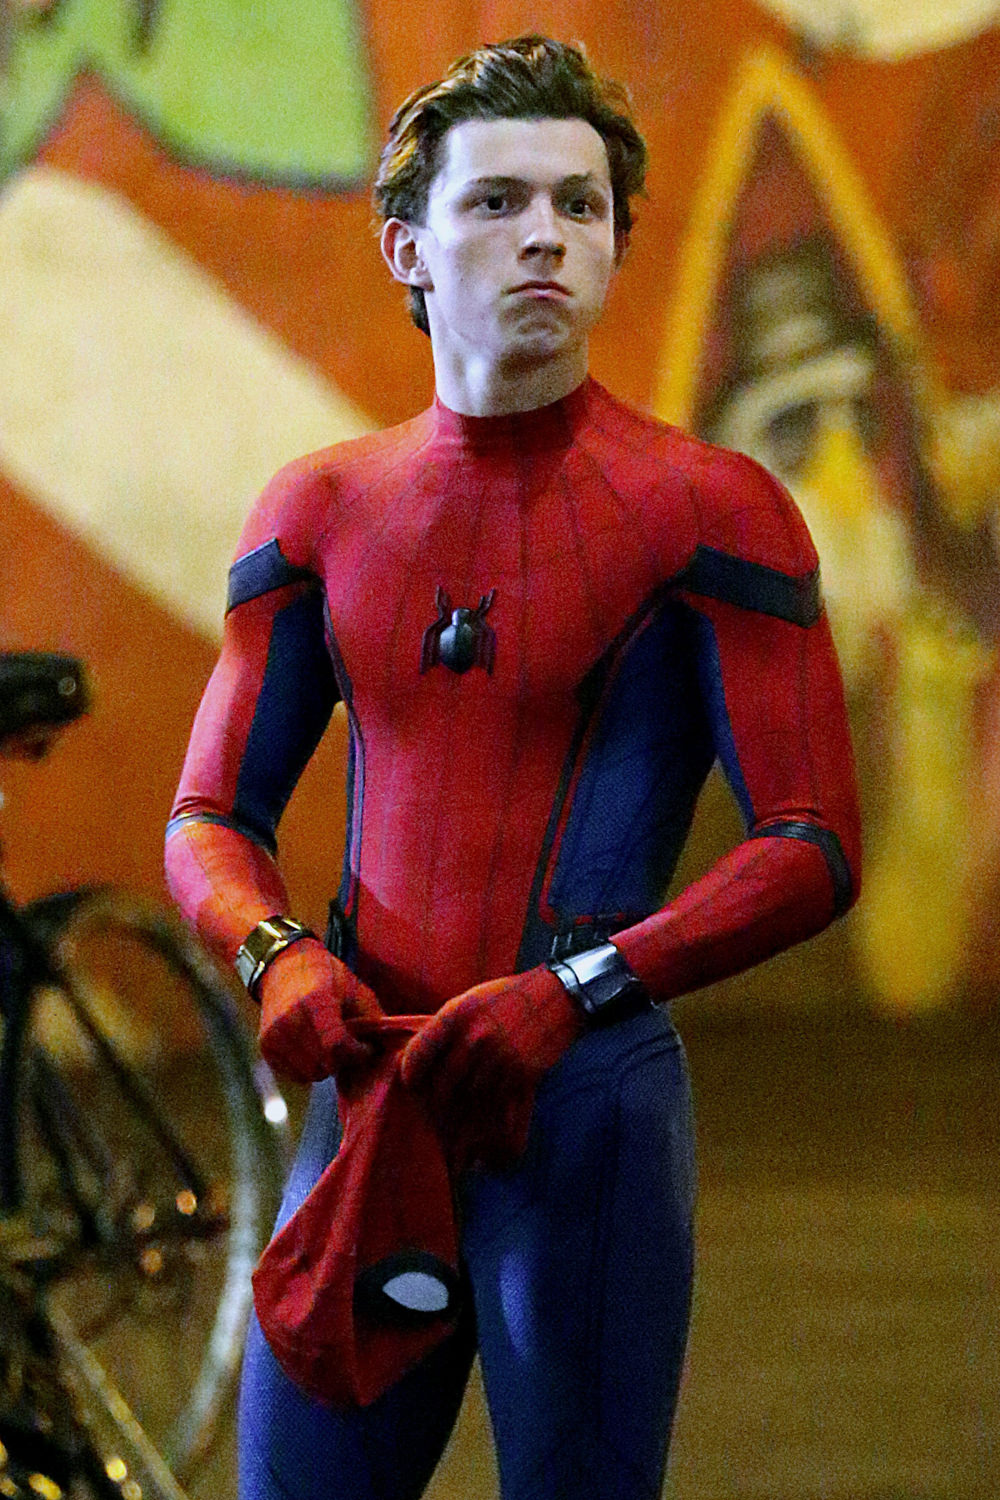 tom-holland-movie-set-spider-man-homecoming-costumes-tom-lorenzo-site-1